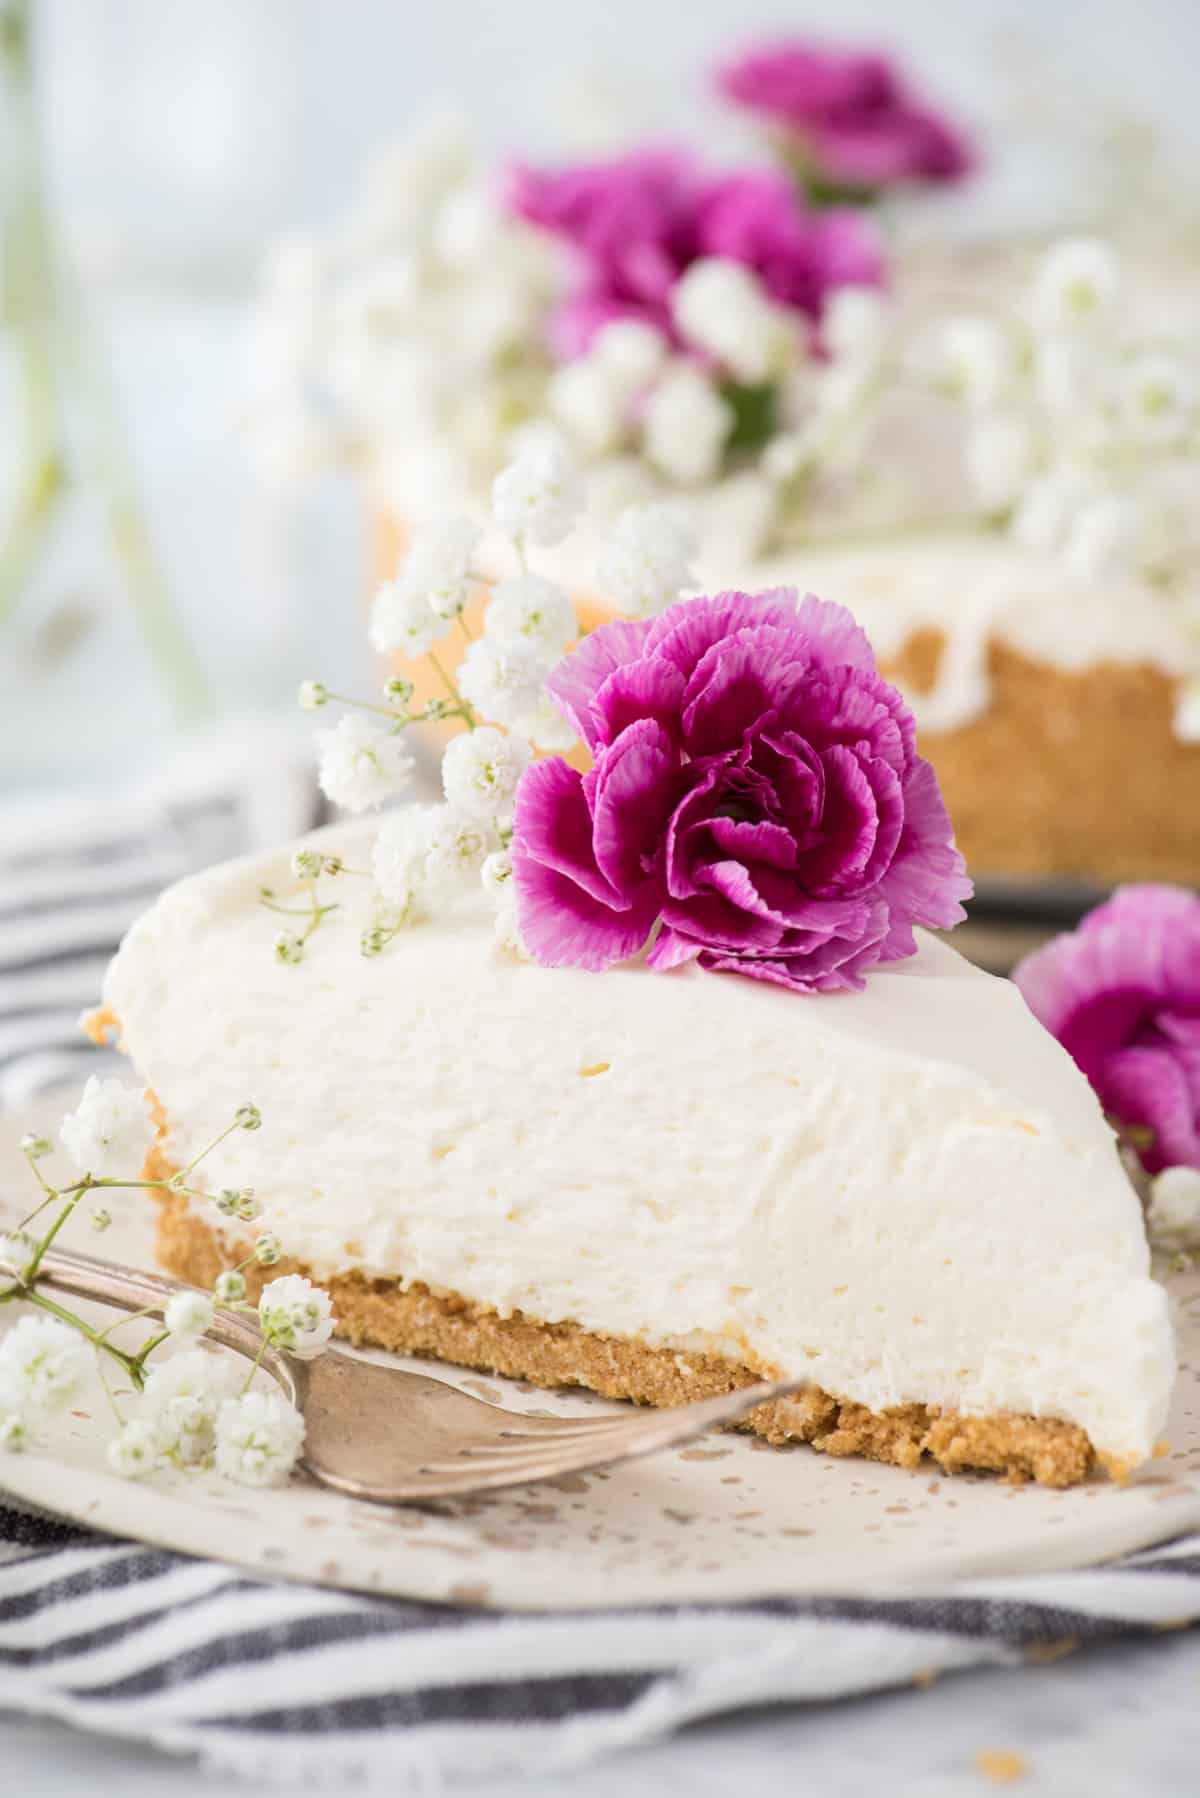 slice of no bake cheesecake with white and pink flowers on white plate